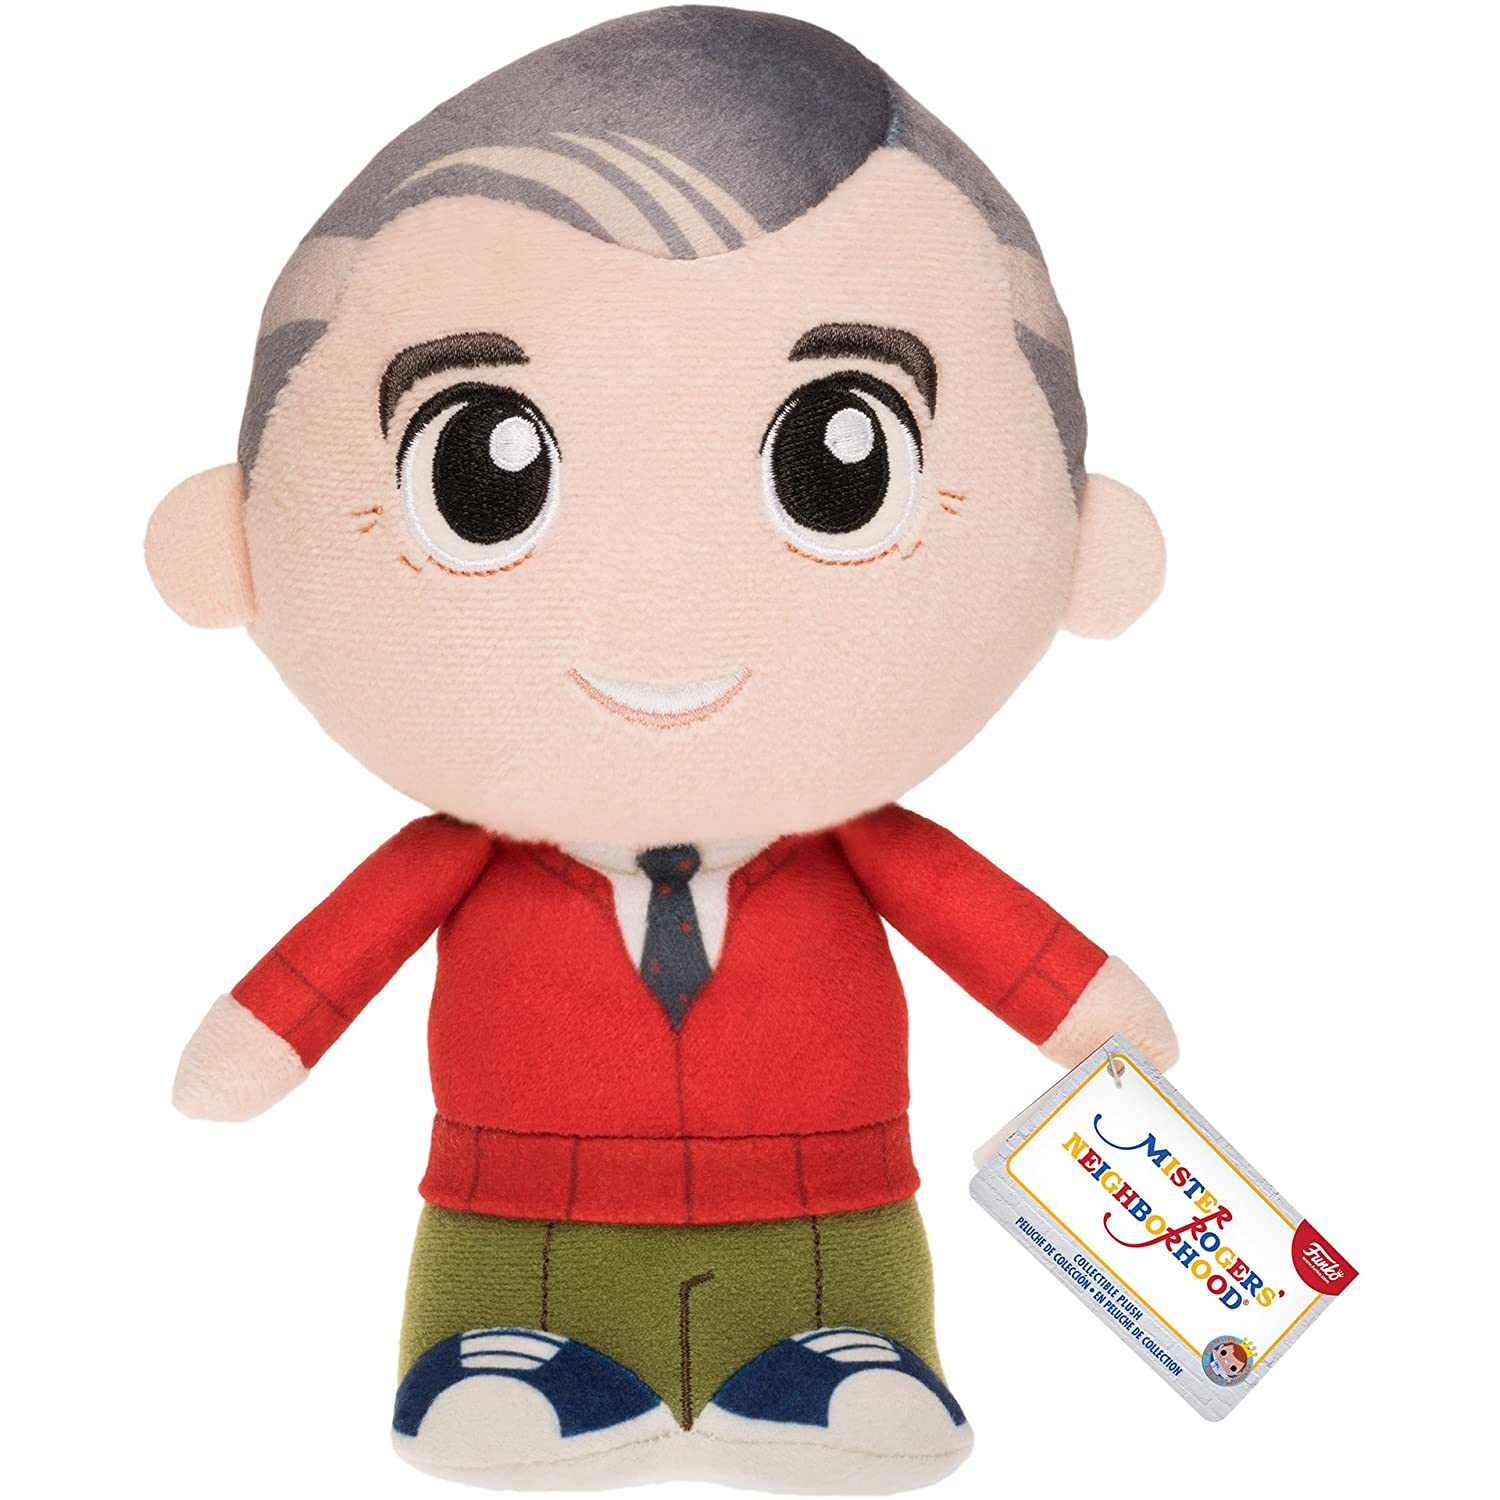 Amazon.com: tuvcubuoruderal Mister Rogers: Funko SuperCute Plushies x Mister Rogers Neighborhood Plush + 1 Official Sesame Street Trading Card Bundle ...